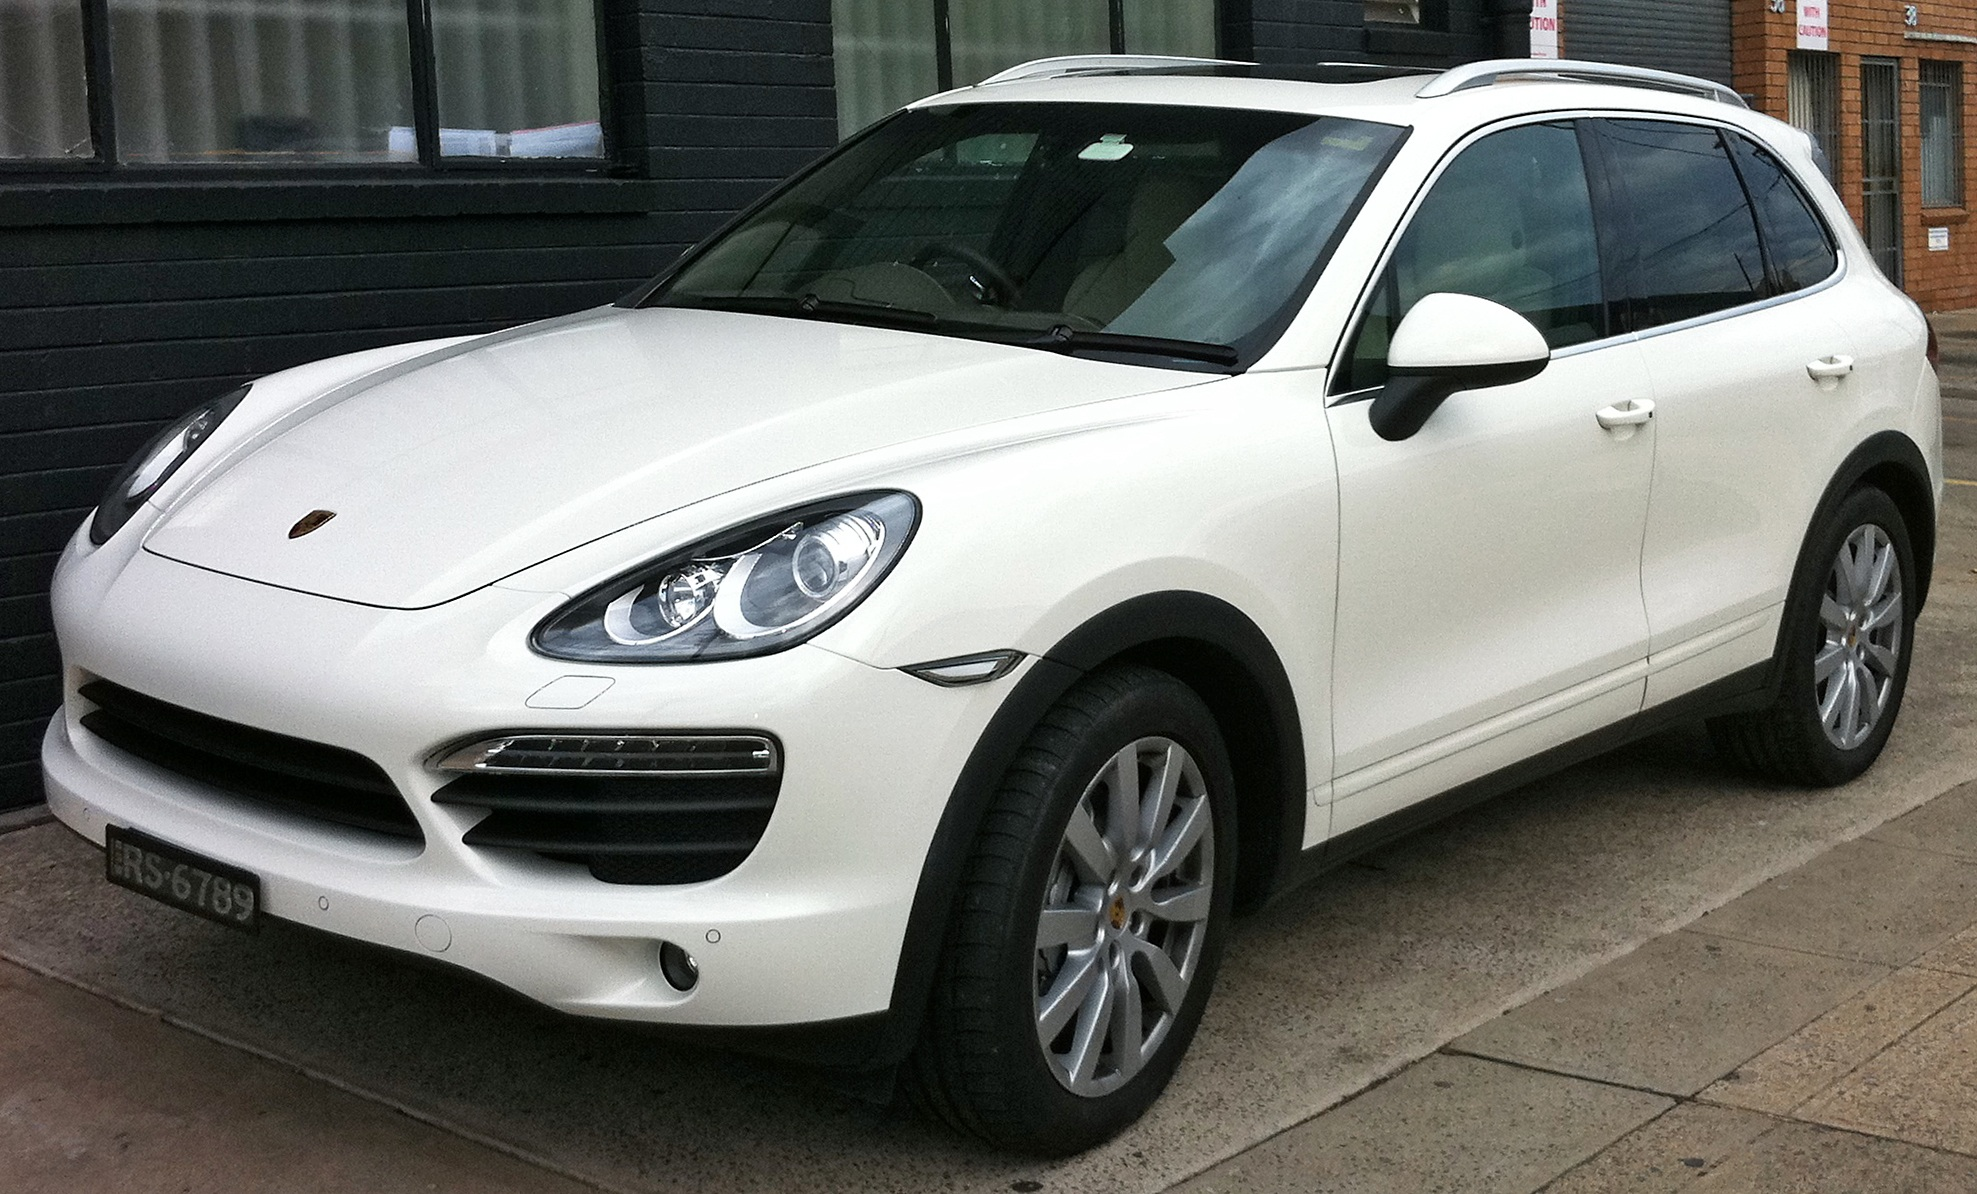 Porsche Cayenne, Car, Cayenne, Porsche, Ride, HQ Photo